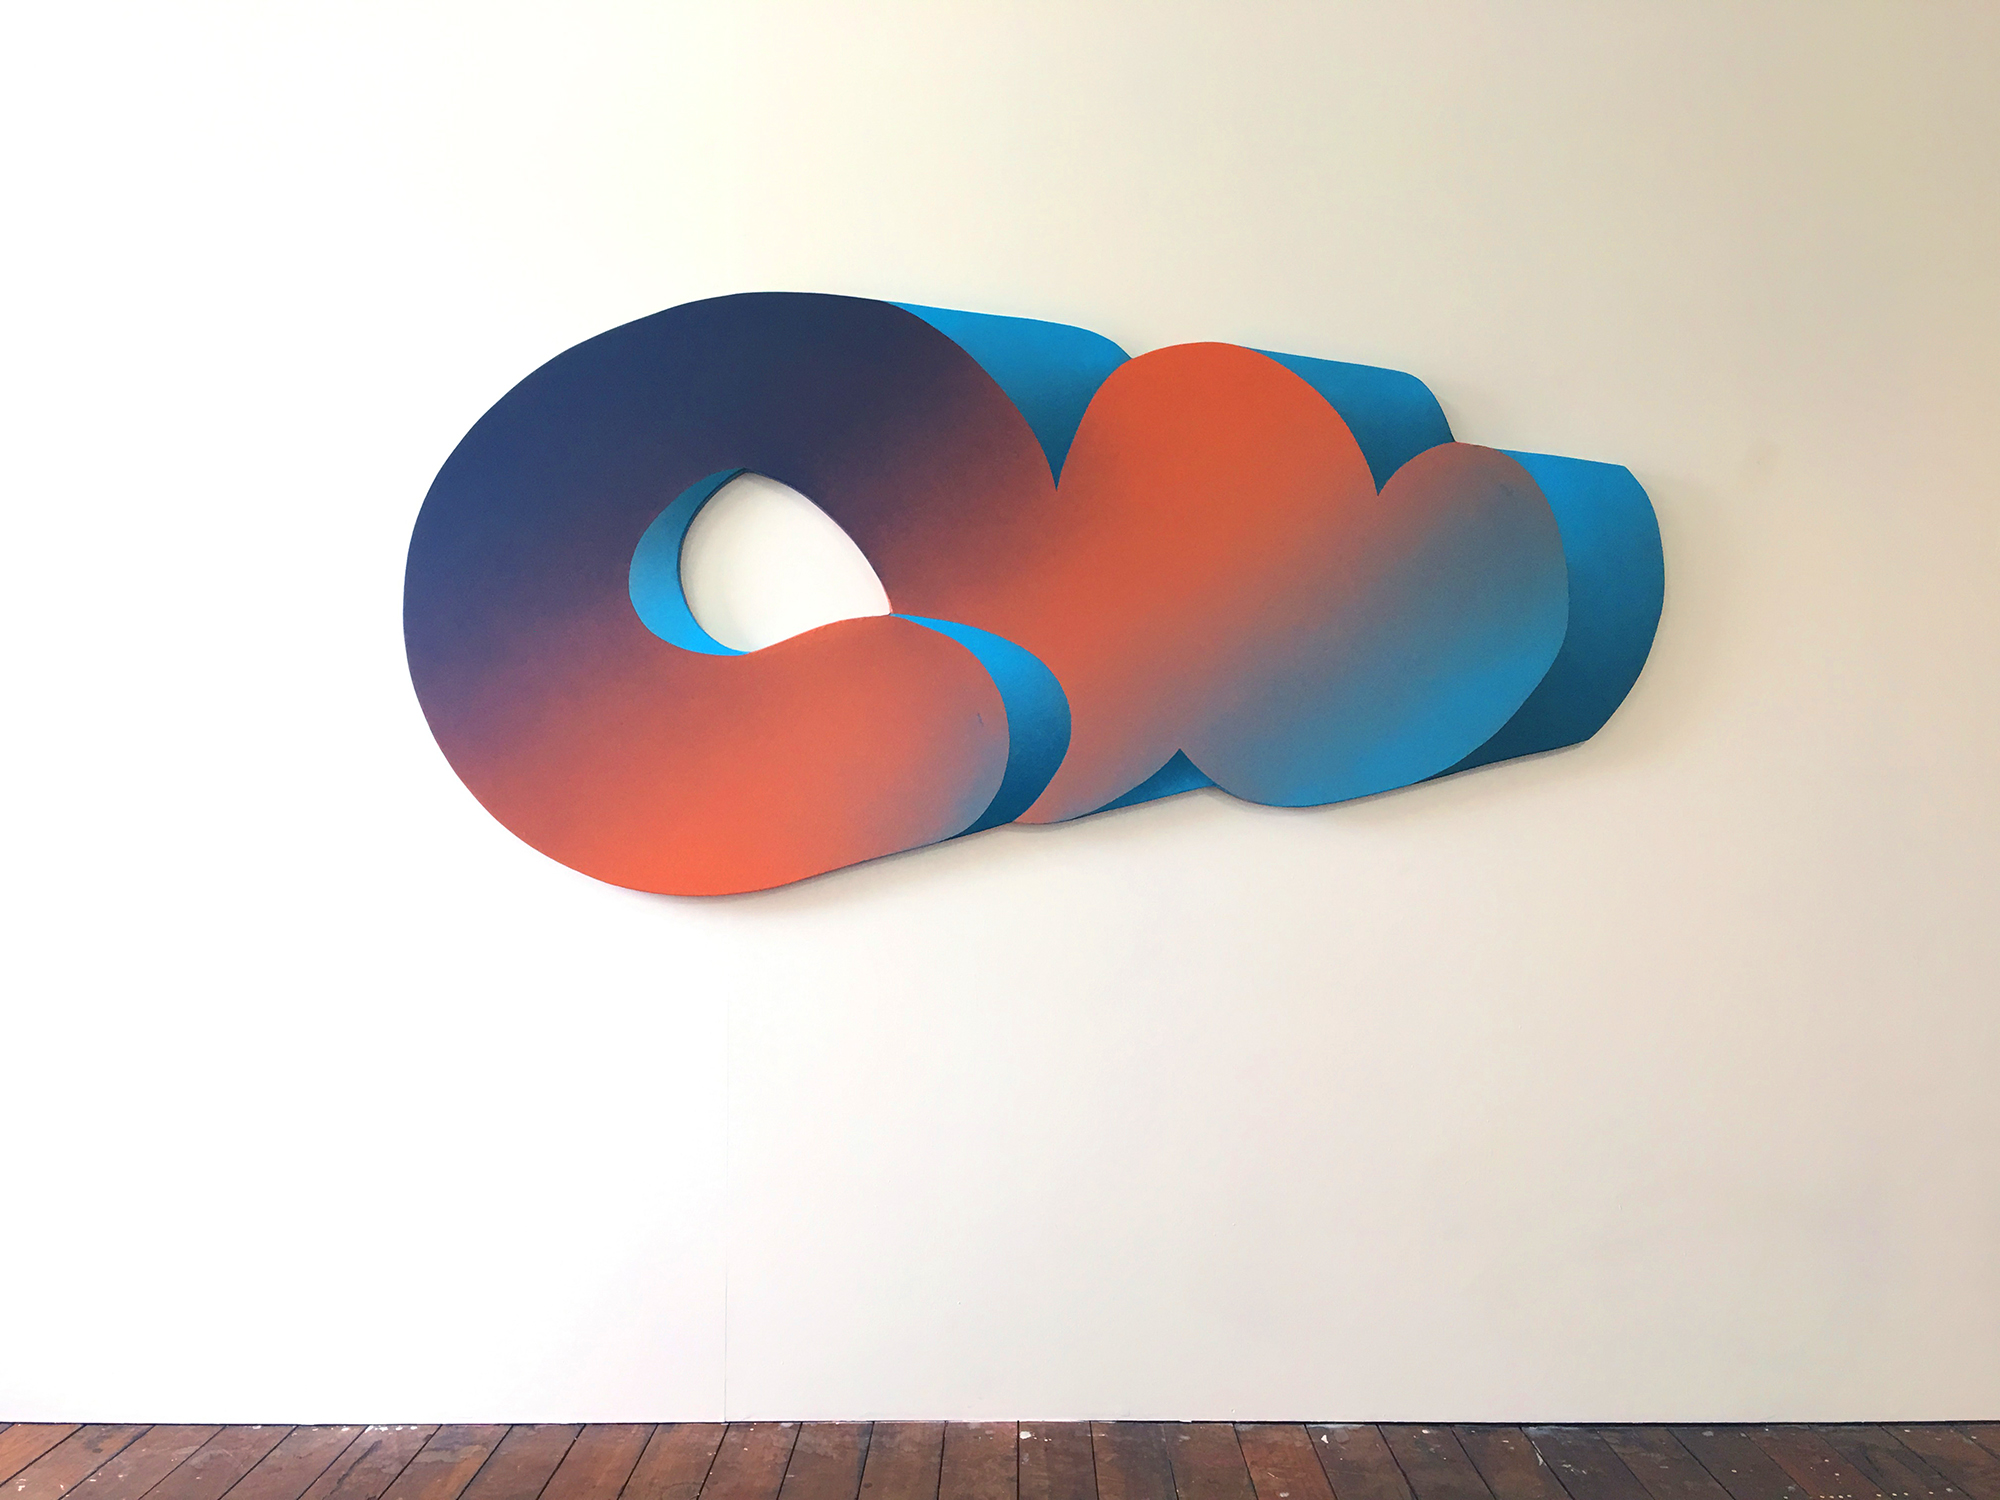 Shaped canvas, Australian artist, contemporary art, Australian artist, Perth artist, painting, futuristic, gradient, exhibition, disabled artist, bruno booth